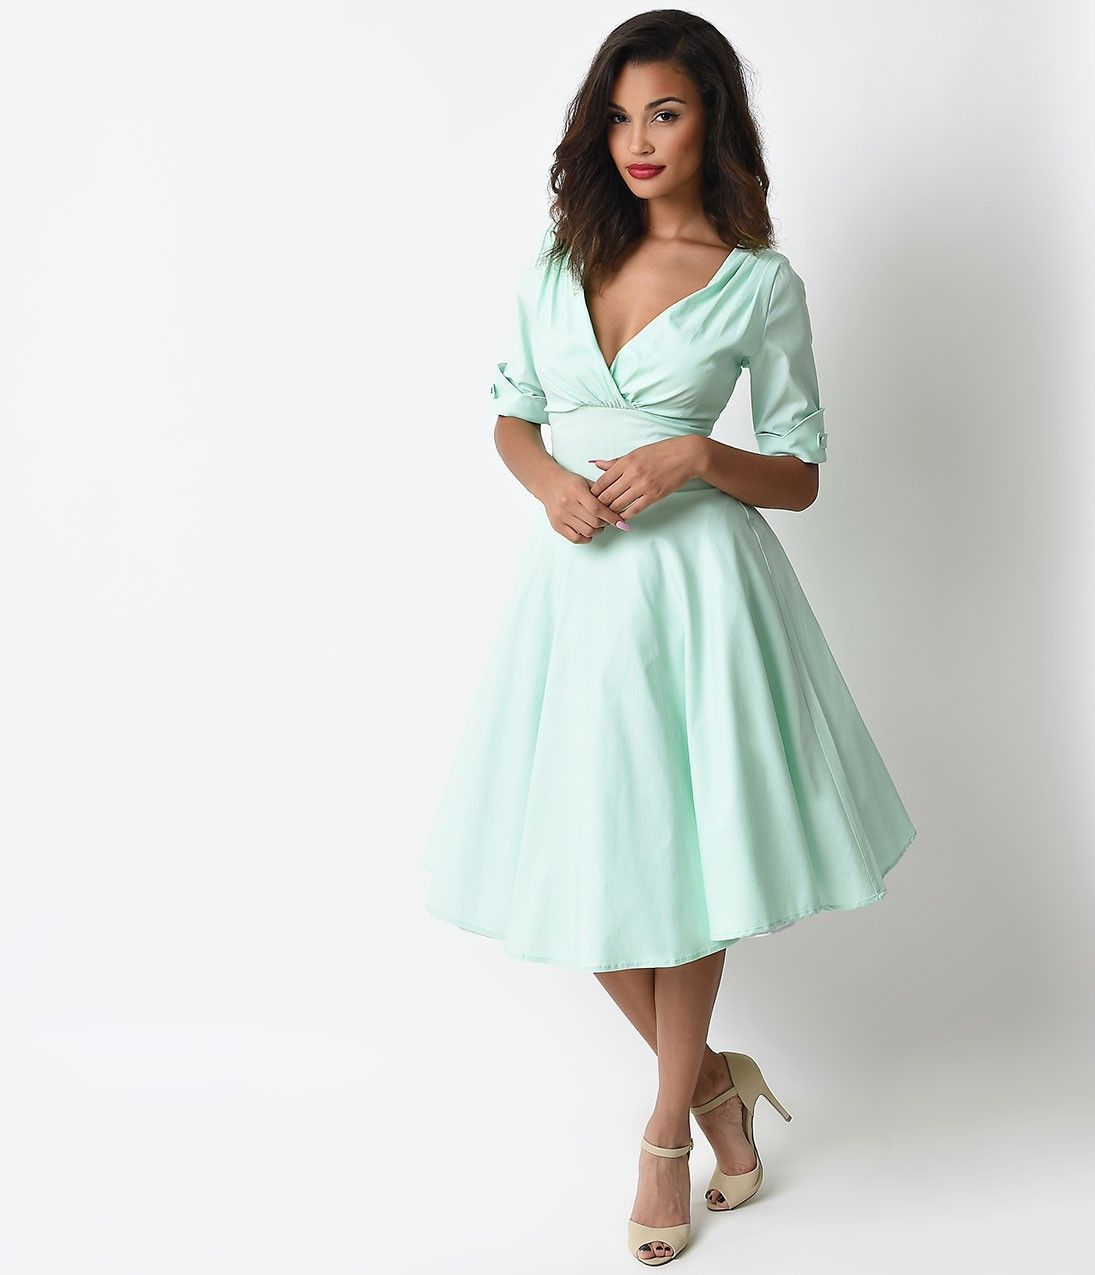 Unique vintage s style mint delores sleeved swing dress prim